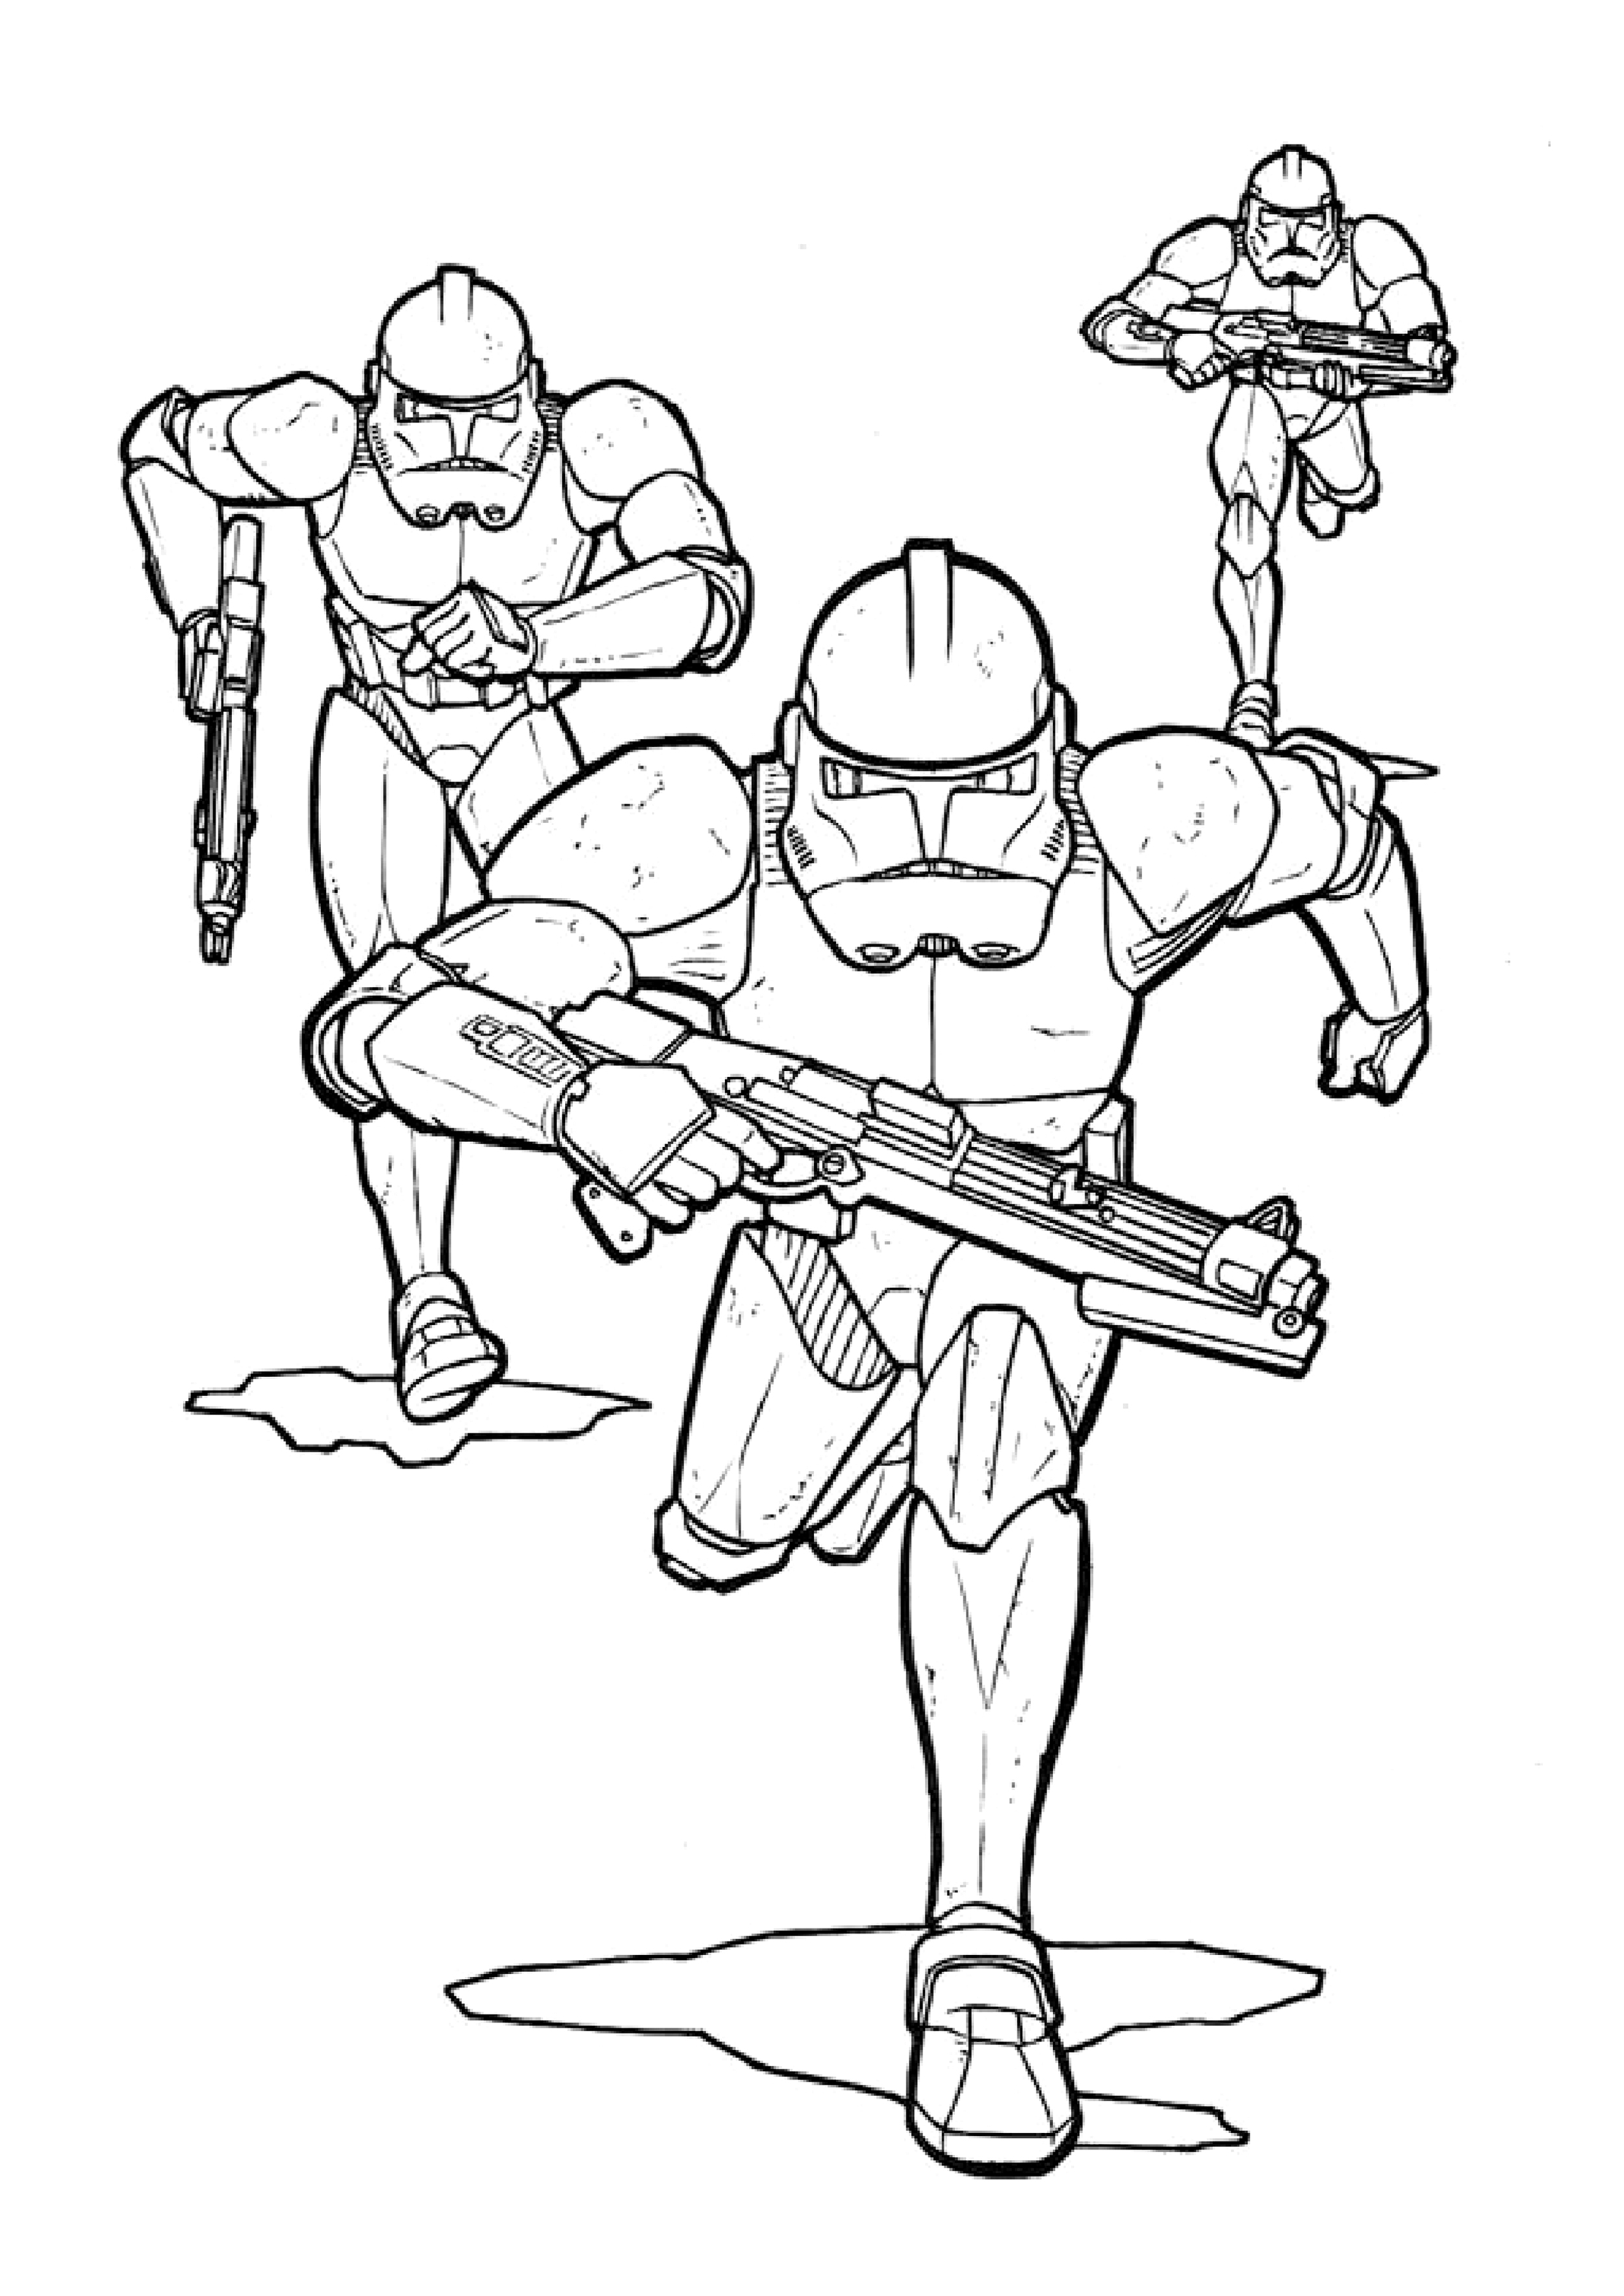 star wars coloring pages printable star wars coloring pages coloringrocks star printable wars coloring pages